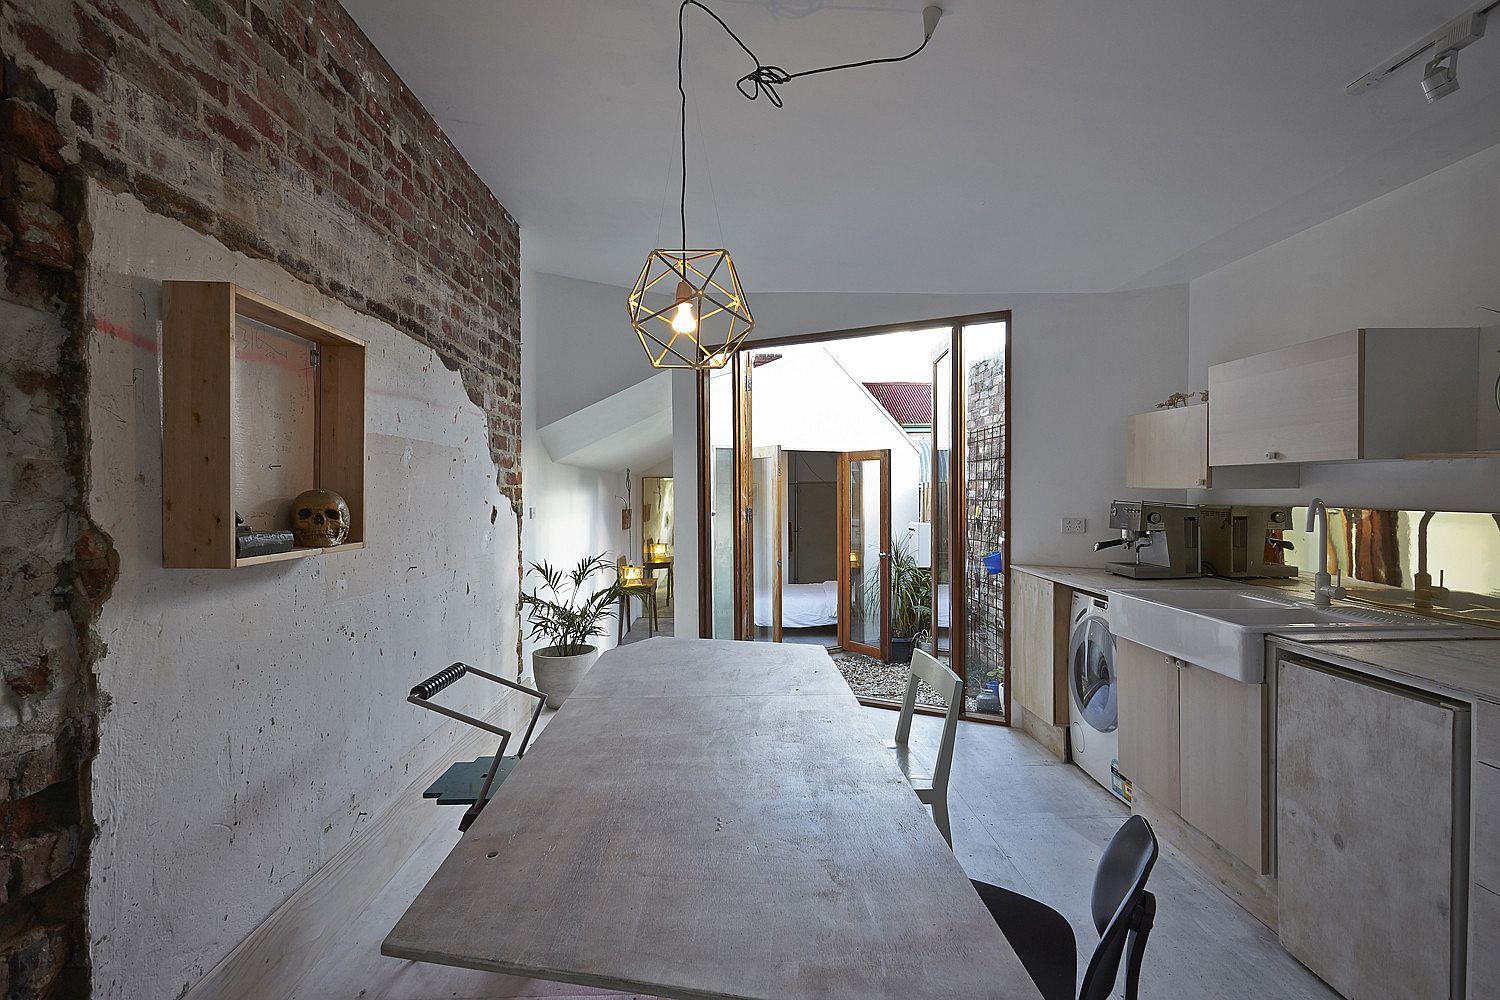 Exposed-brick-walls-rugged-plaster-finish-and-eclectic-mix-of-decr-give-this-room-a-unique-style-65749